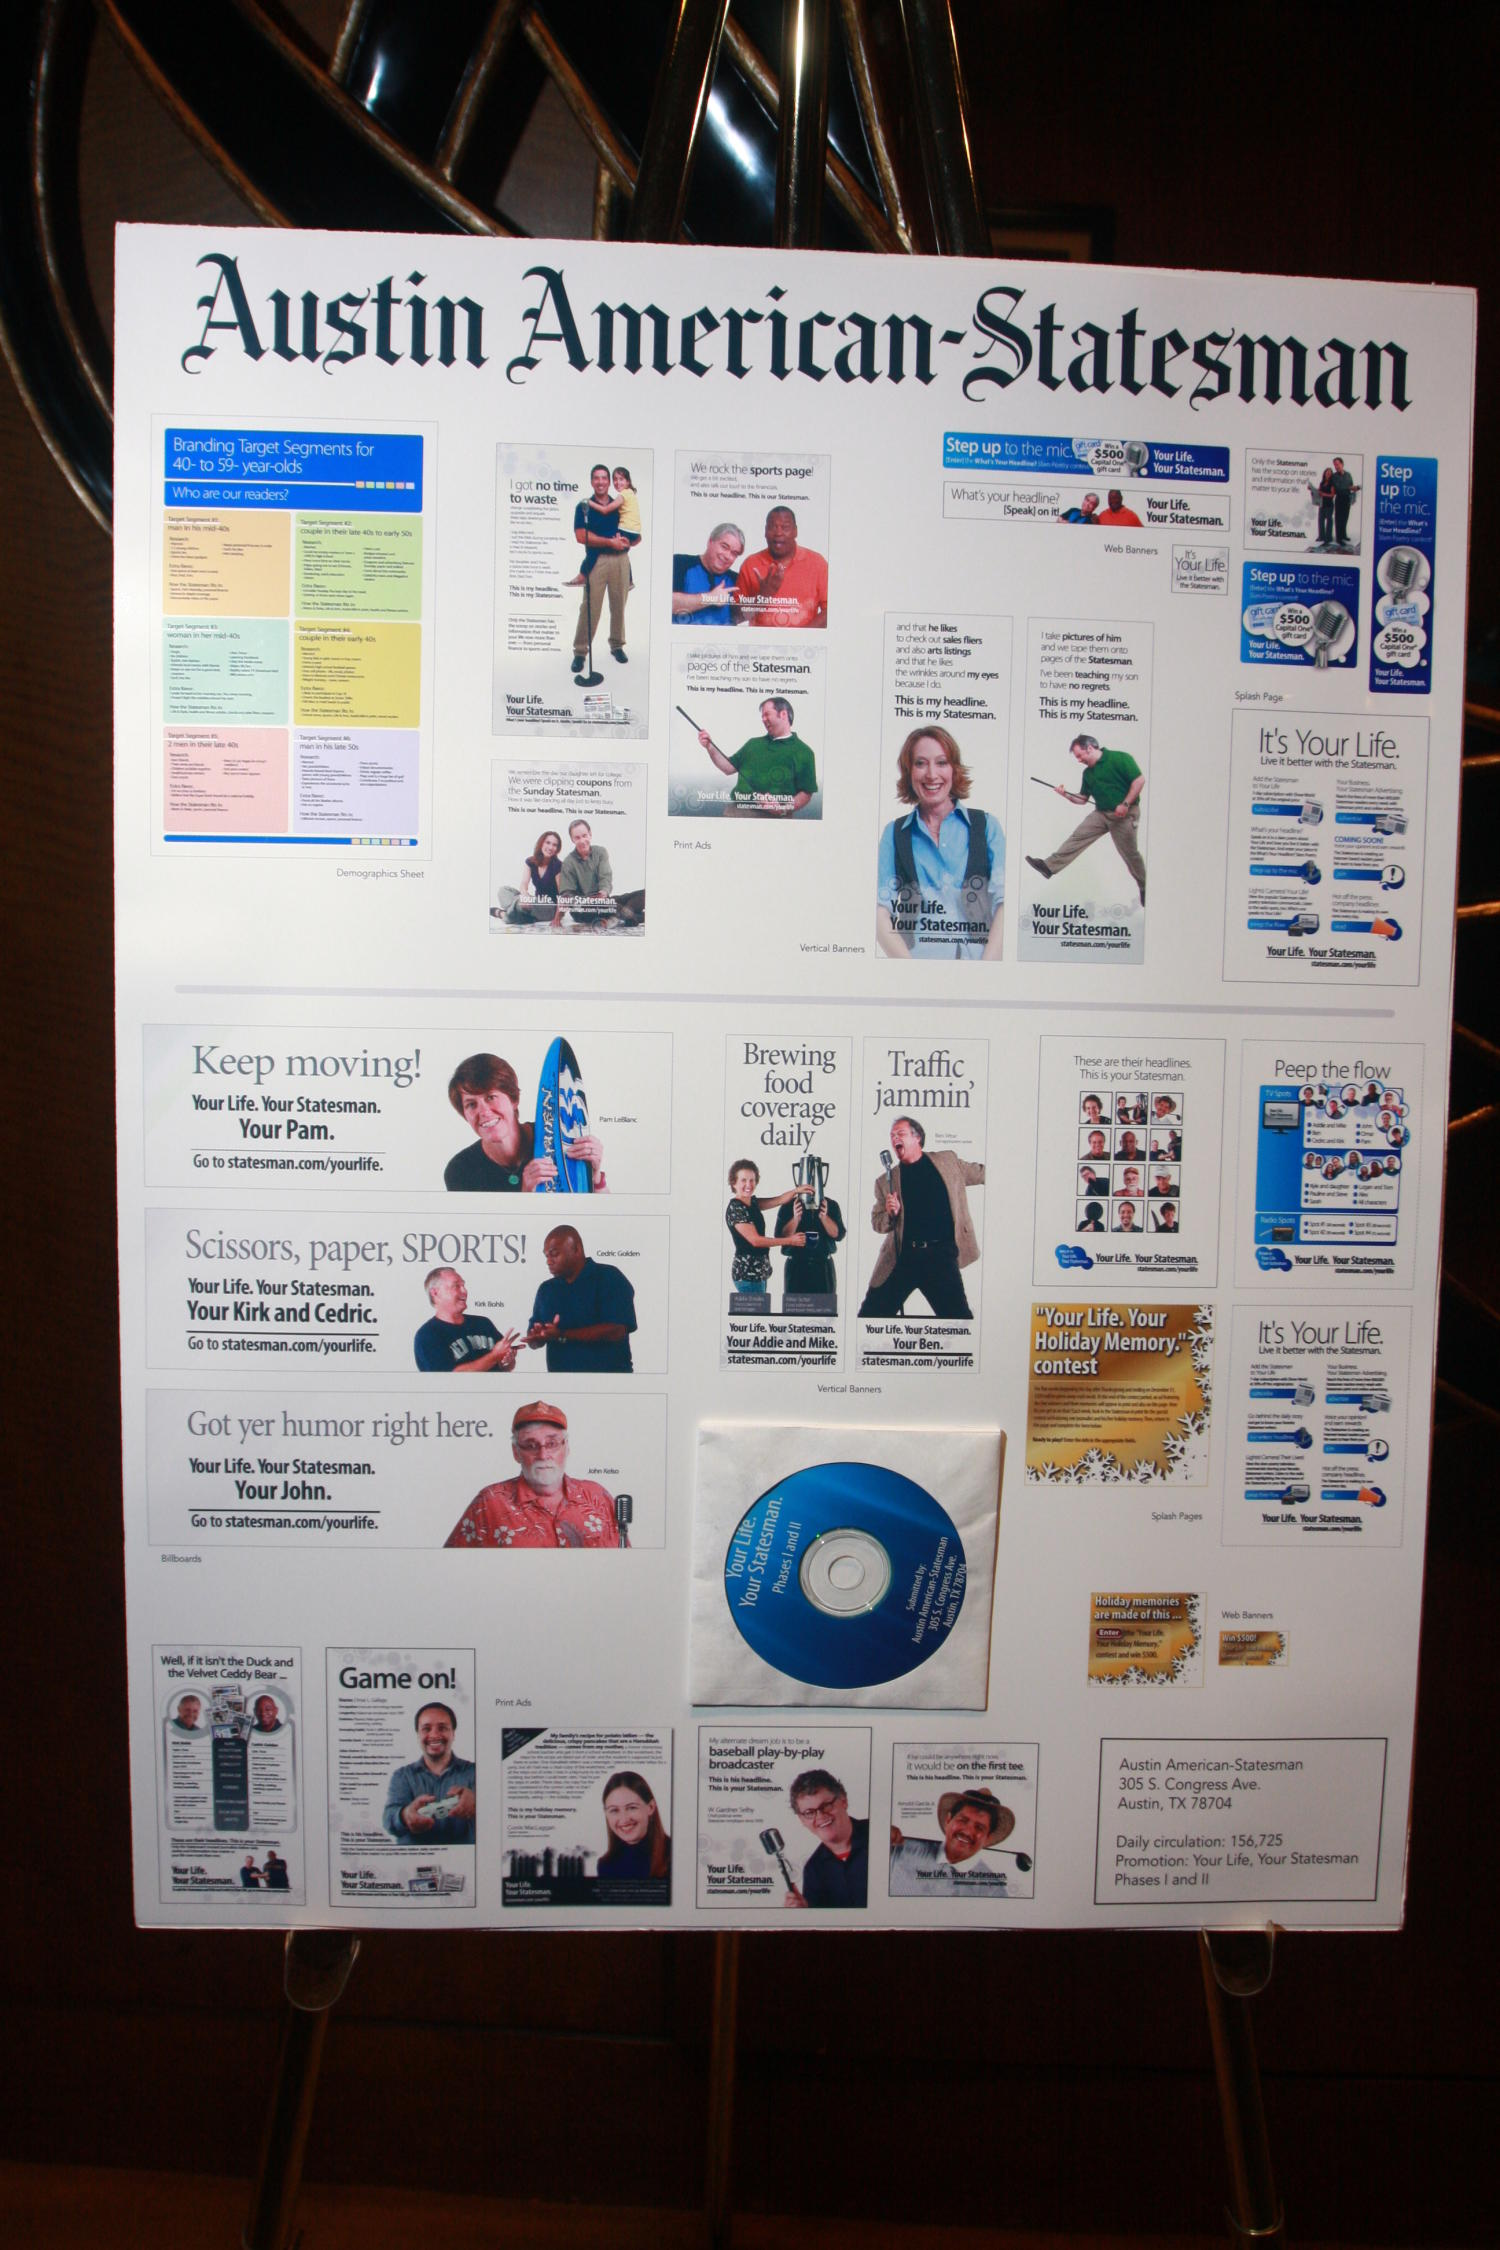 [Austin American-Statesman poster board], Photograph of a poster-board for the Austin American-Statesman taken during the 2010 Texas Daily Newspaper Association annual meeting held in Houston, Texas.,